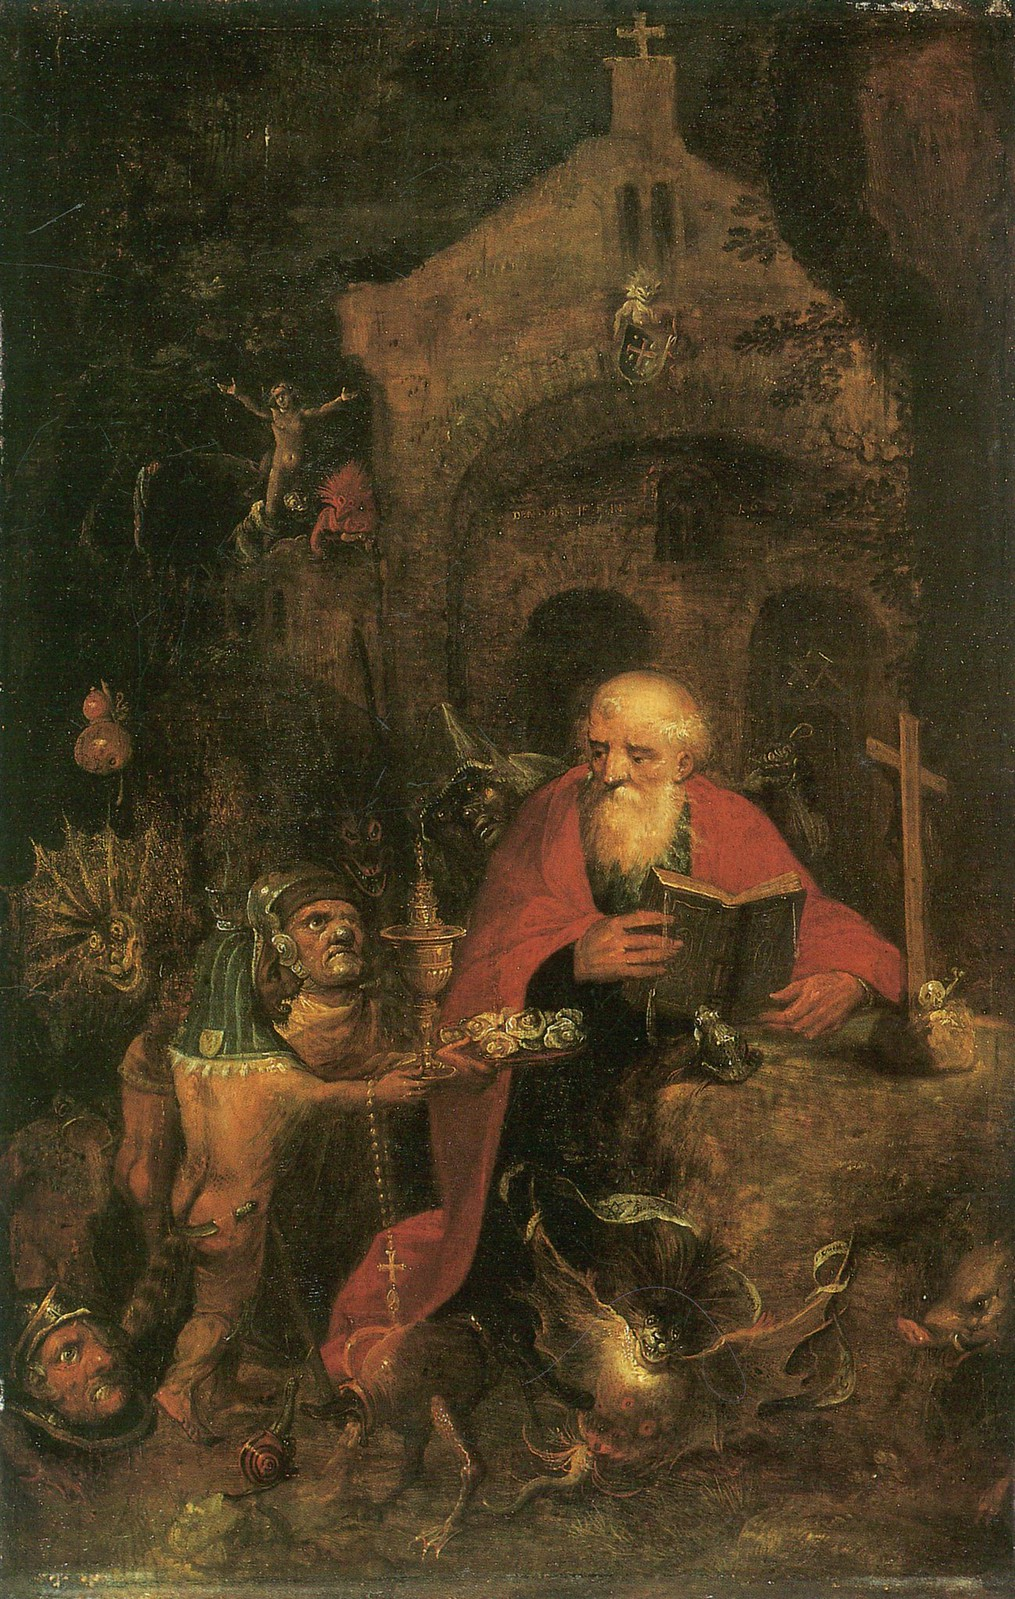 Frans Francken the Younger - The  Temptation of Saint Anthony, 1605